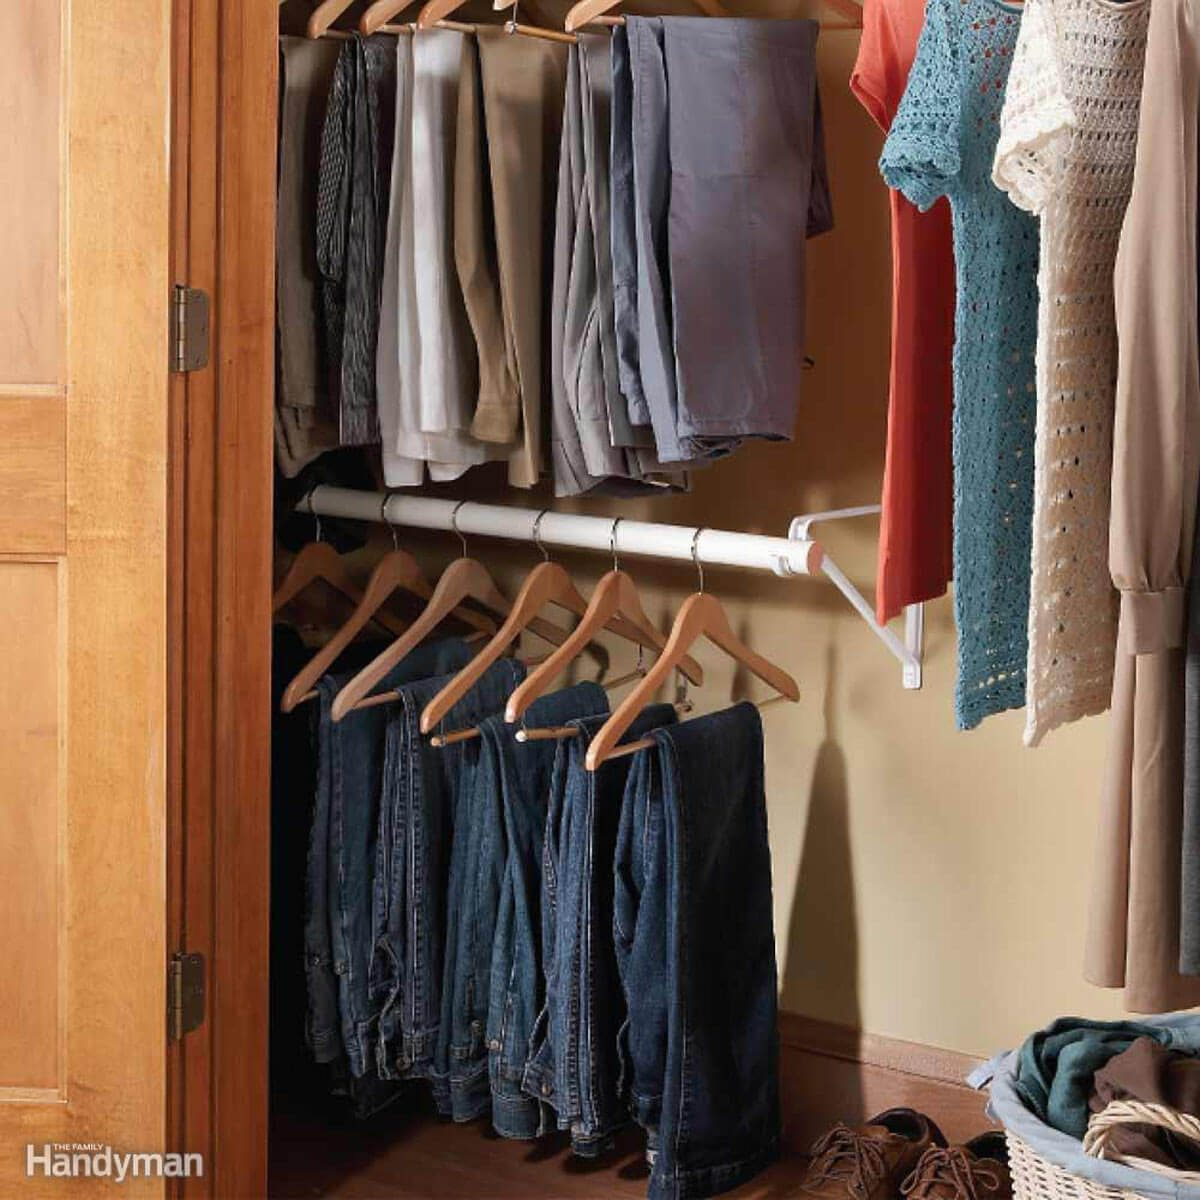 Clothes storage ideas for small spaces: Double-decker closet rod